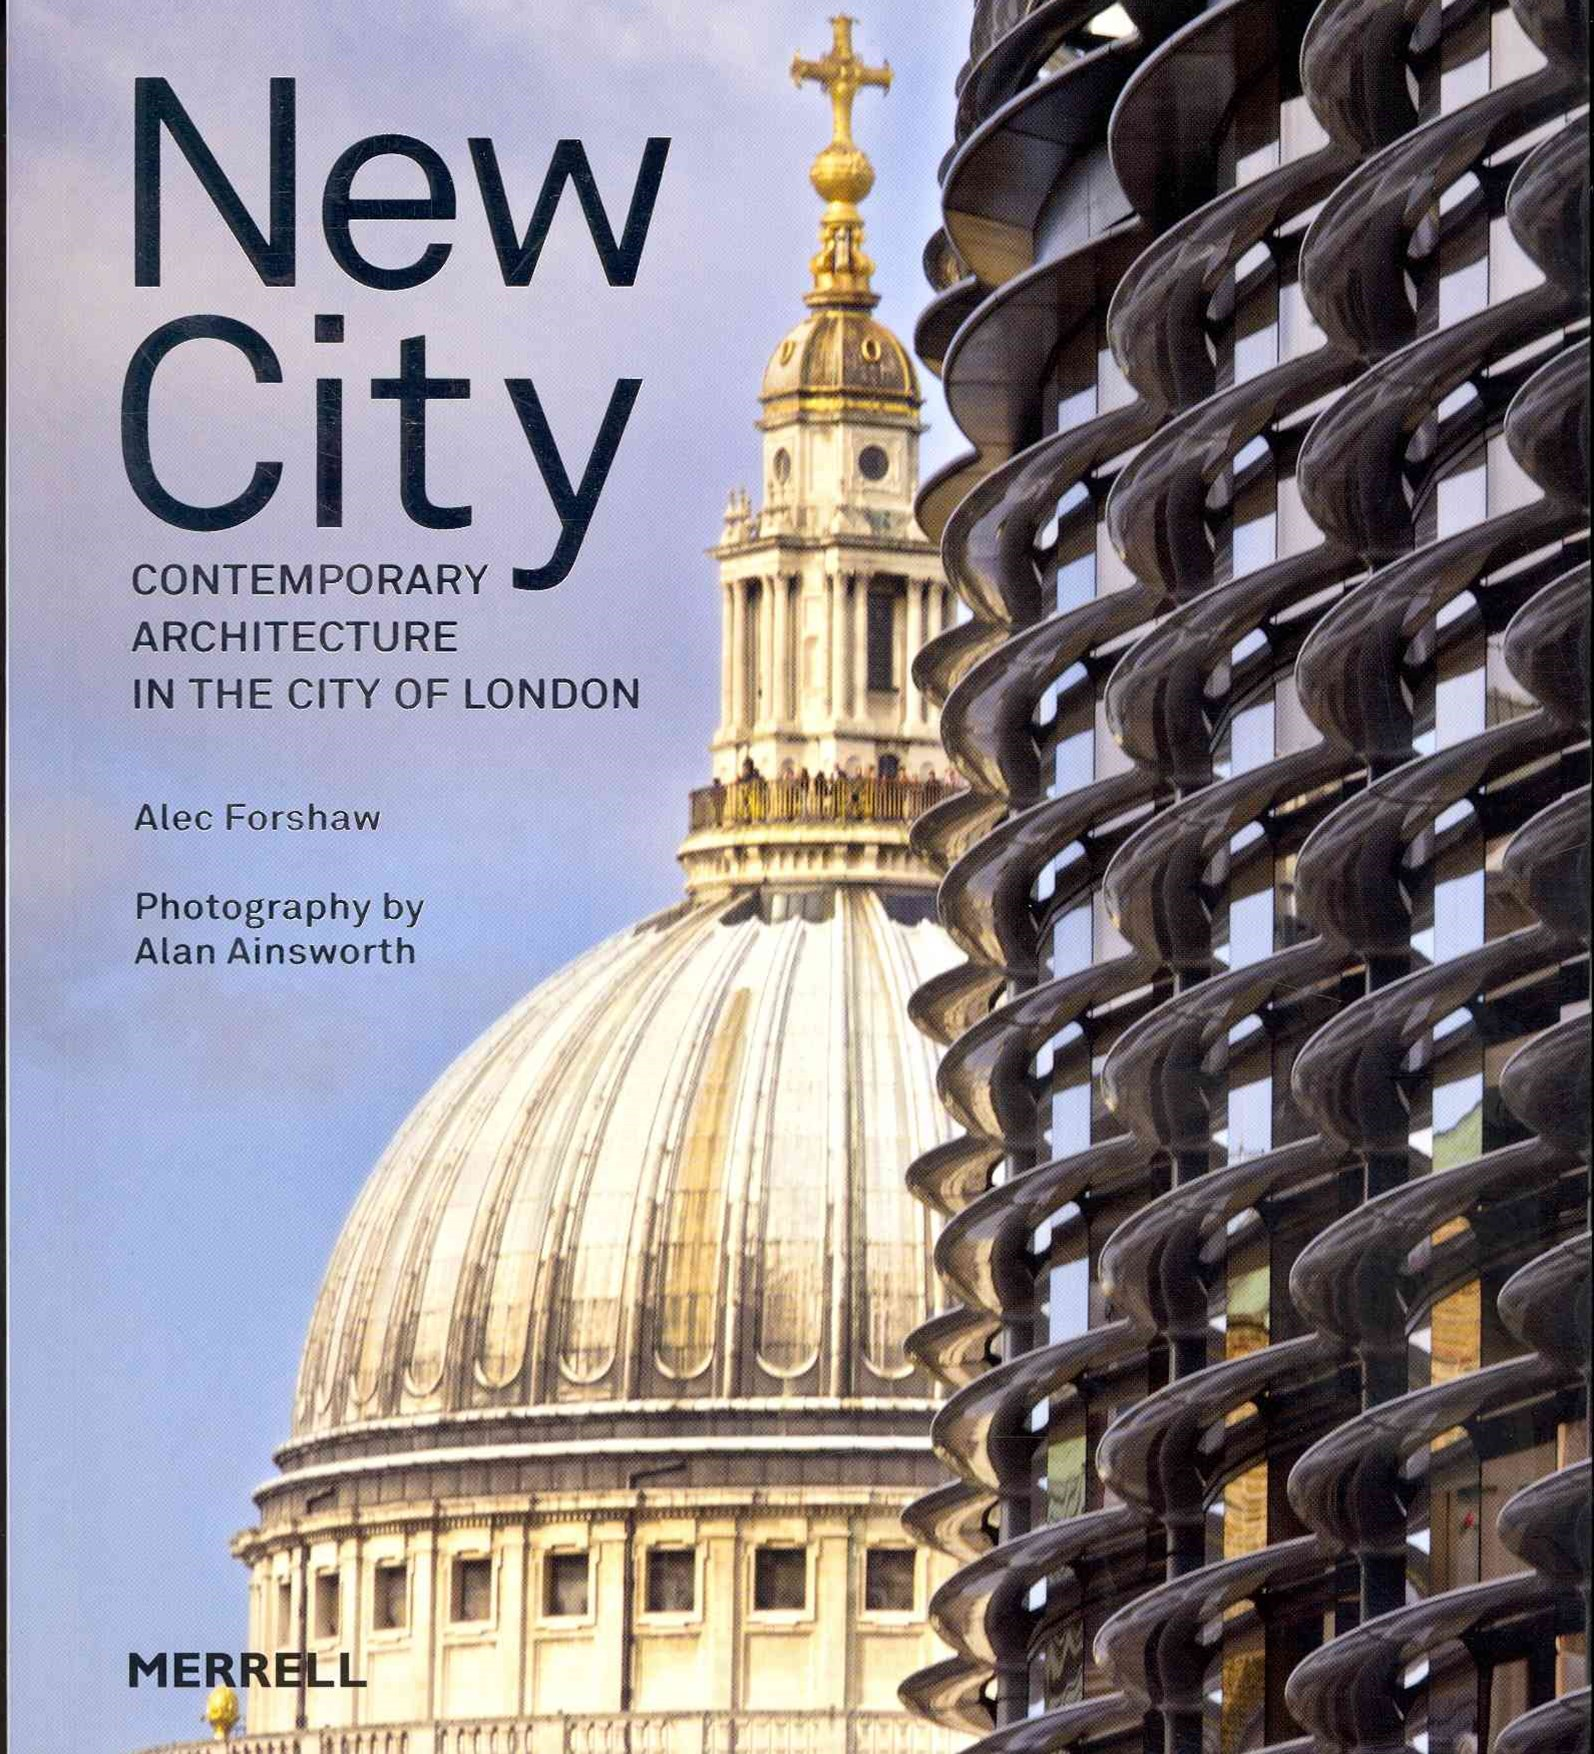 New City: Contemporary Architecture in the City of London